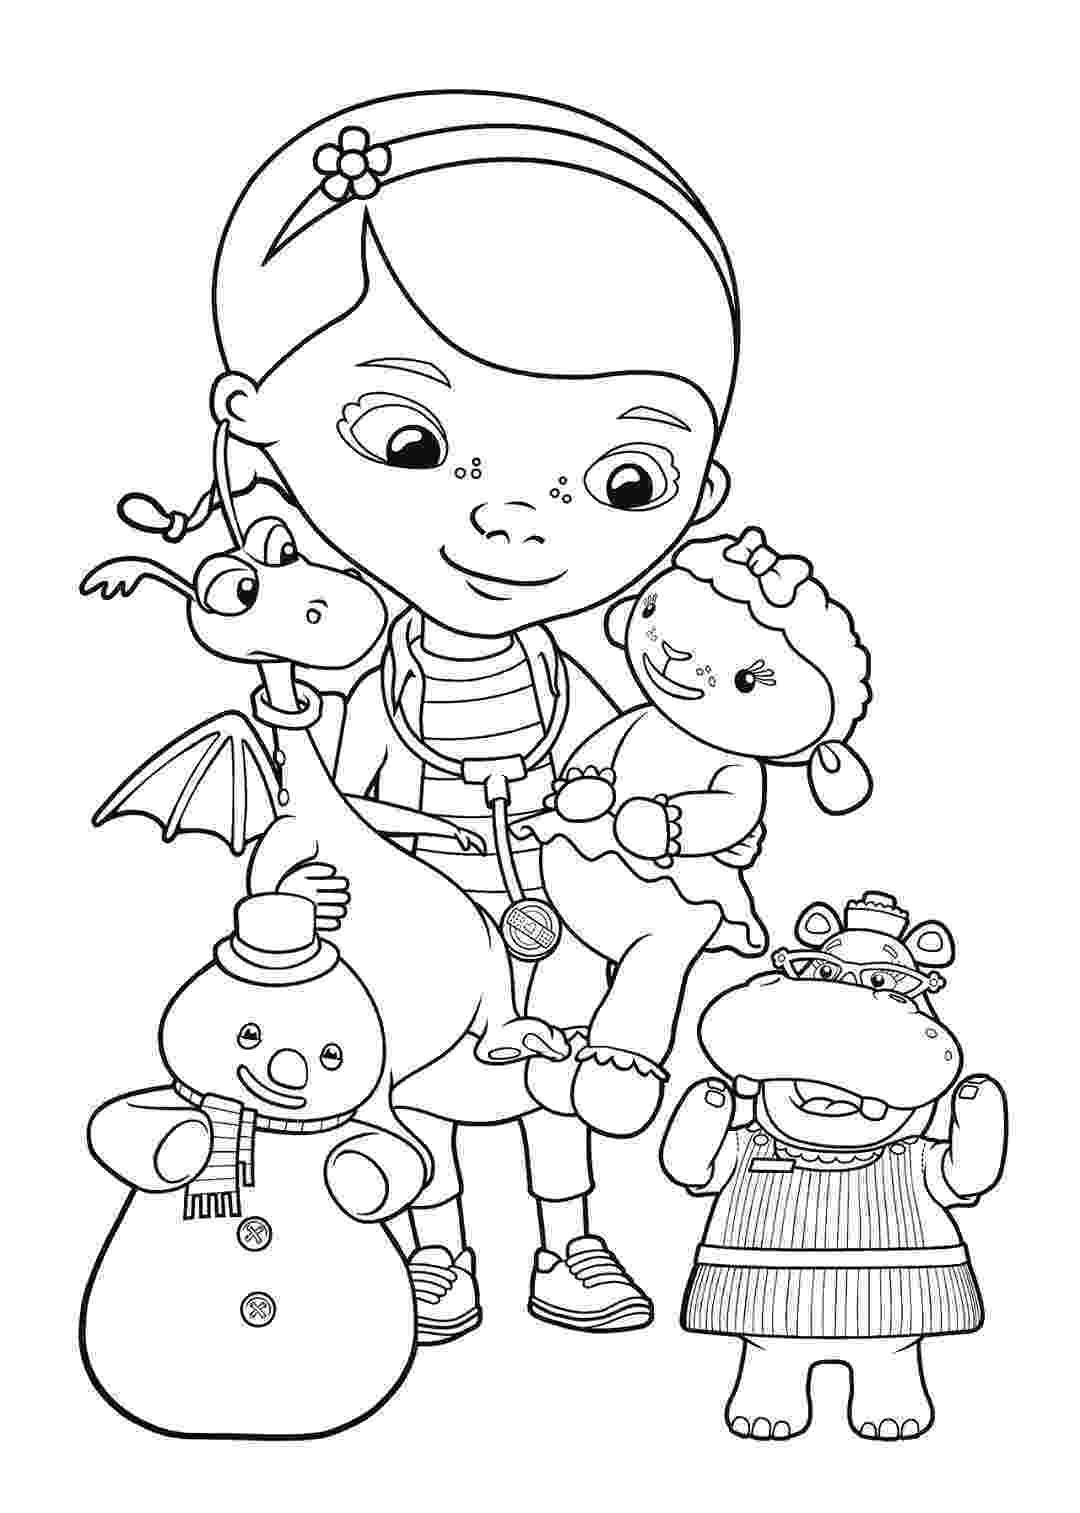 free printable coloring lisa frank coloring pages to download and print for free free printable coloring